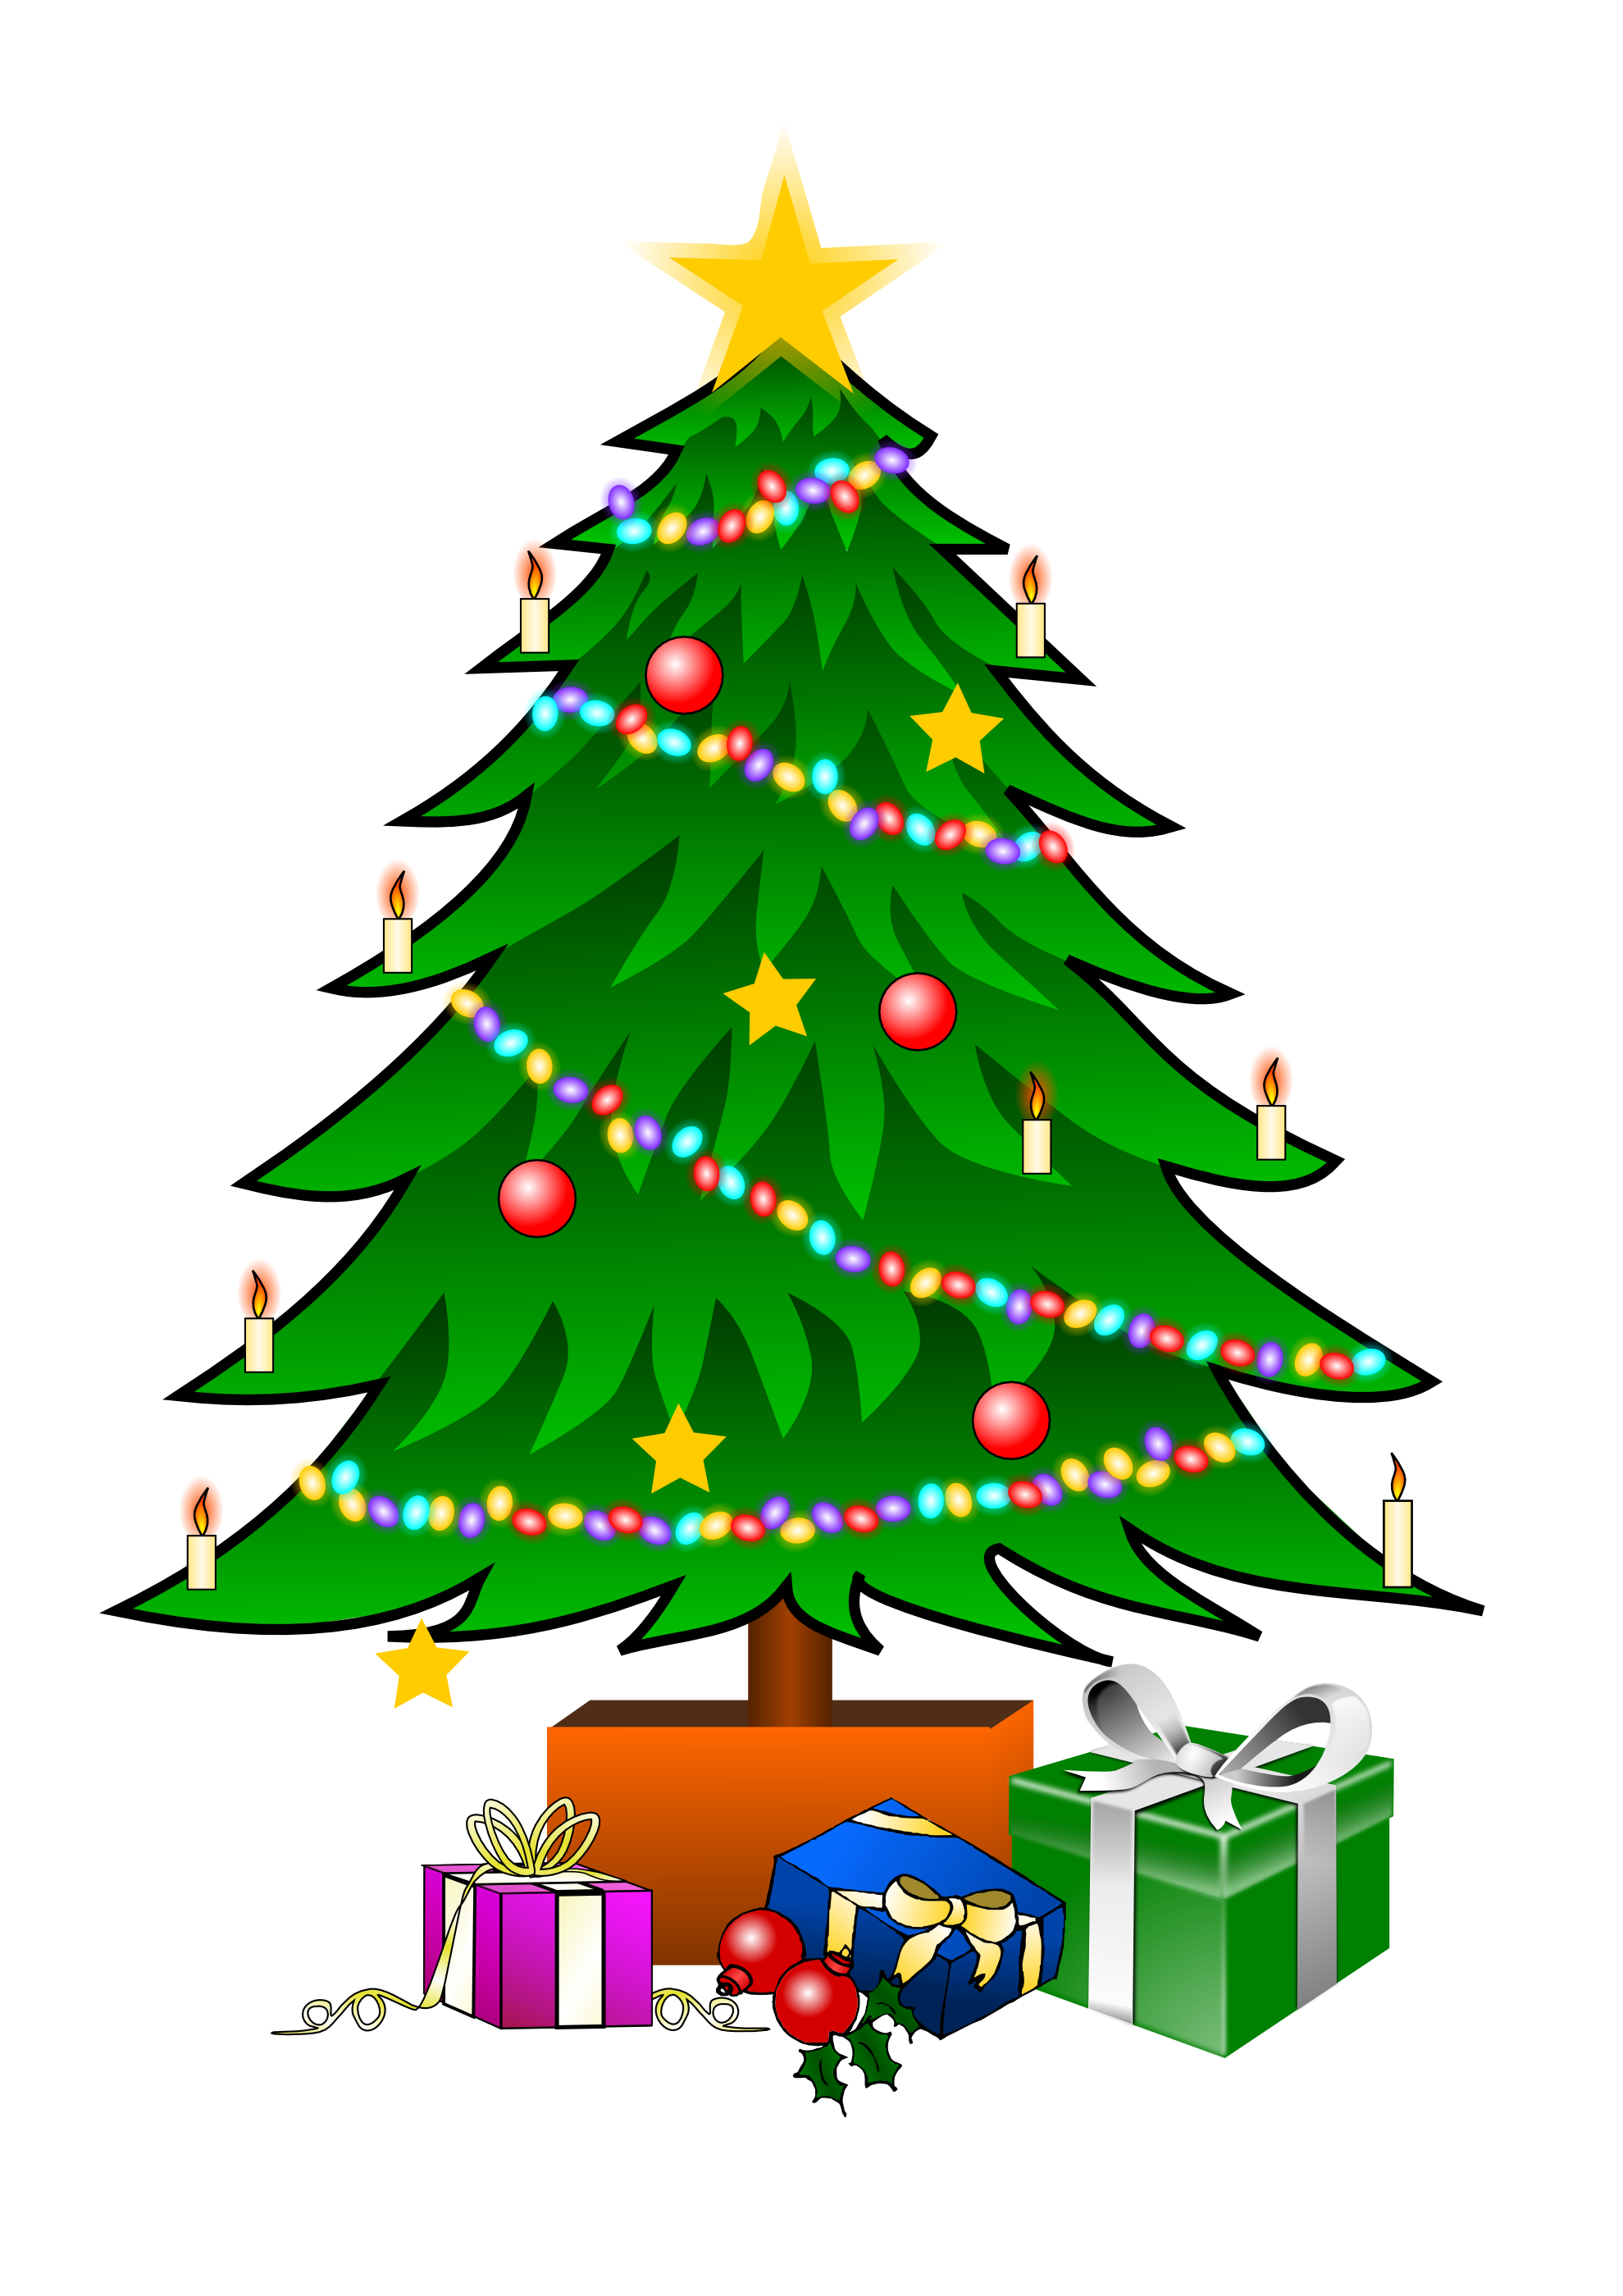 Christmas tree clip art is a fun way to add one of the most symbolic